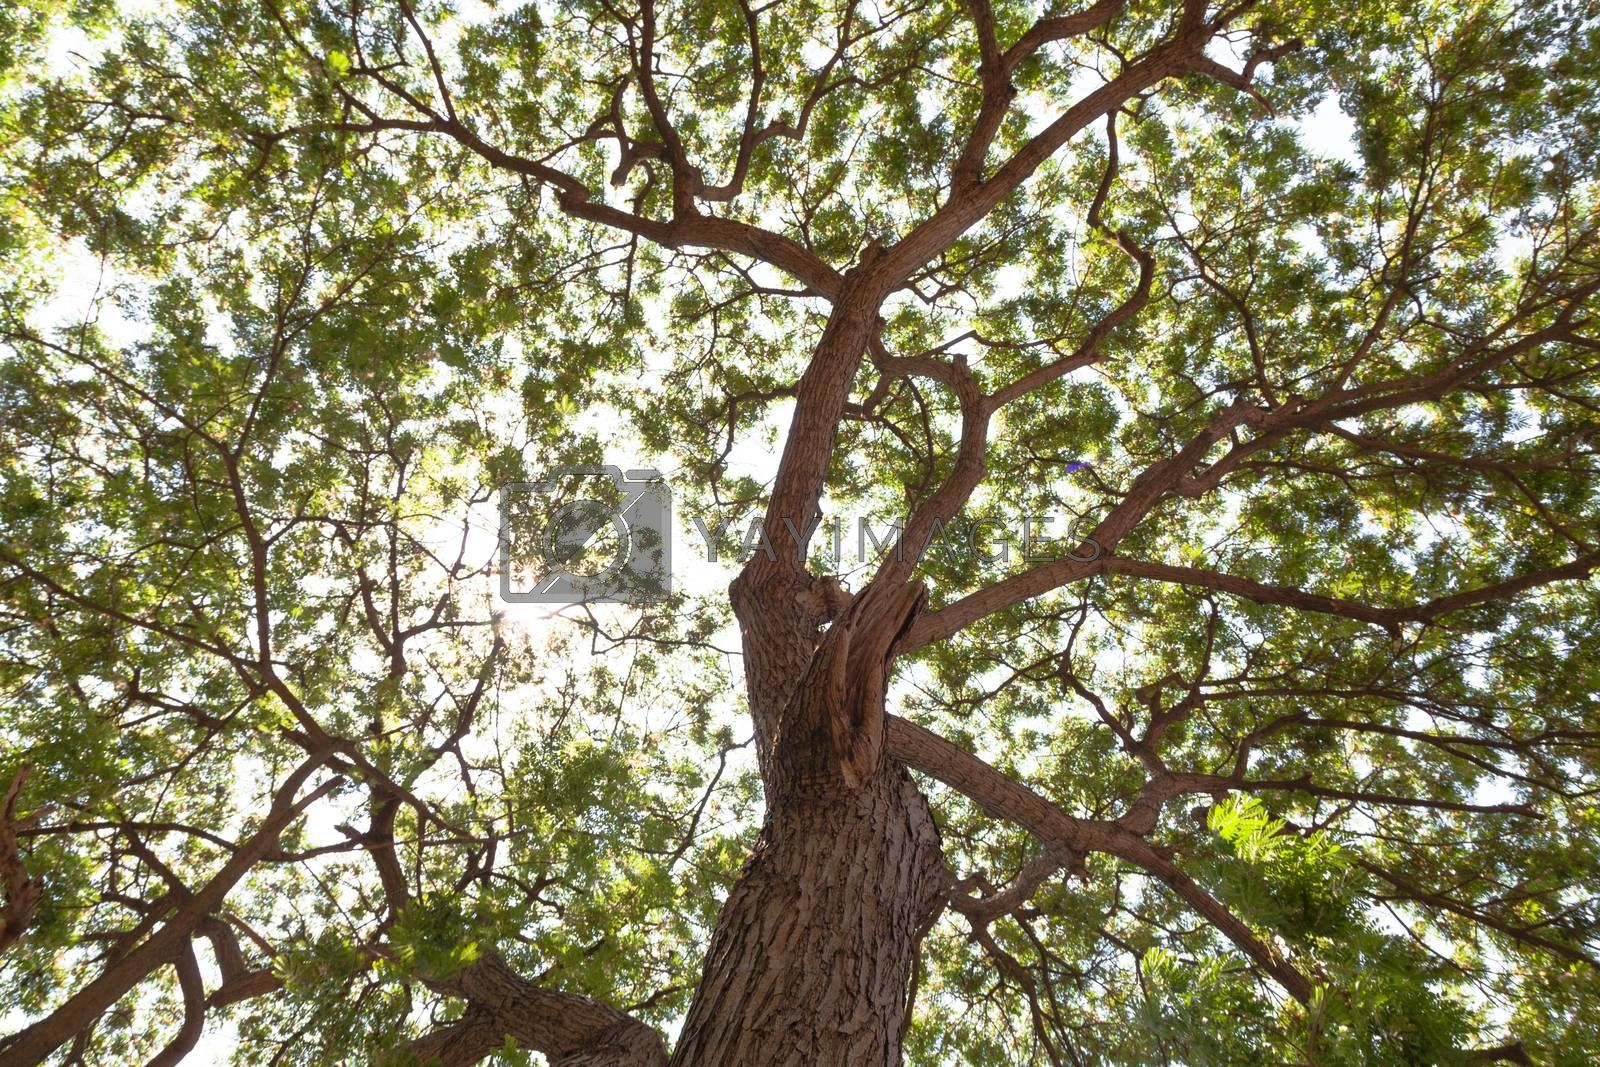 Under the big tree by a454